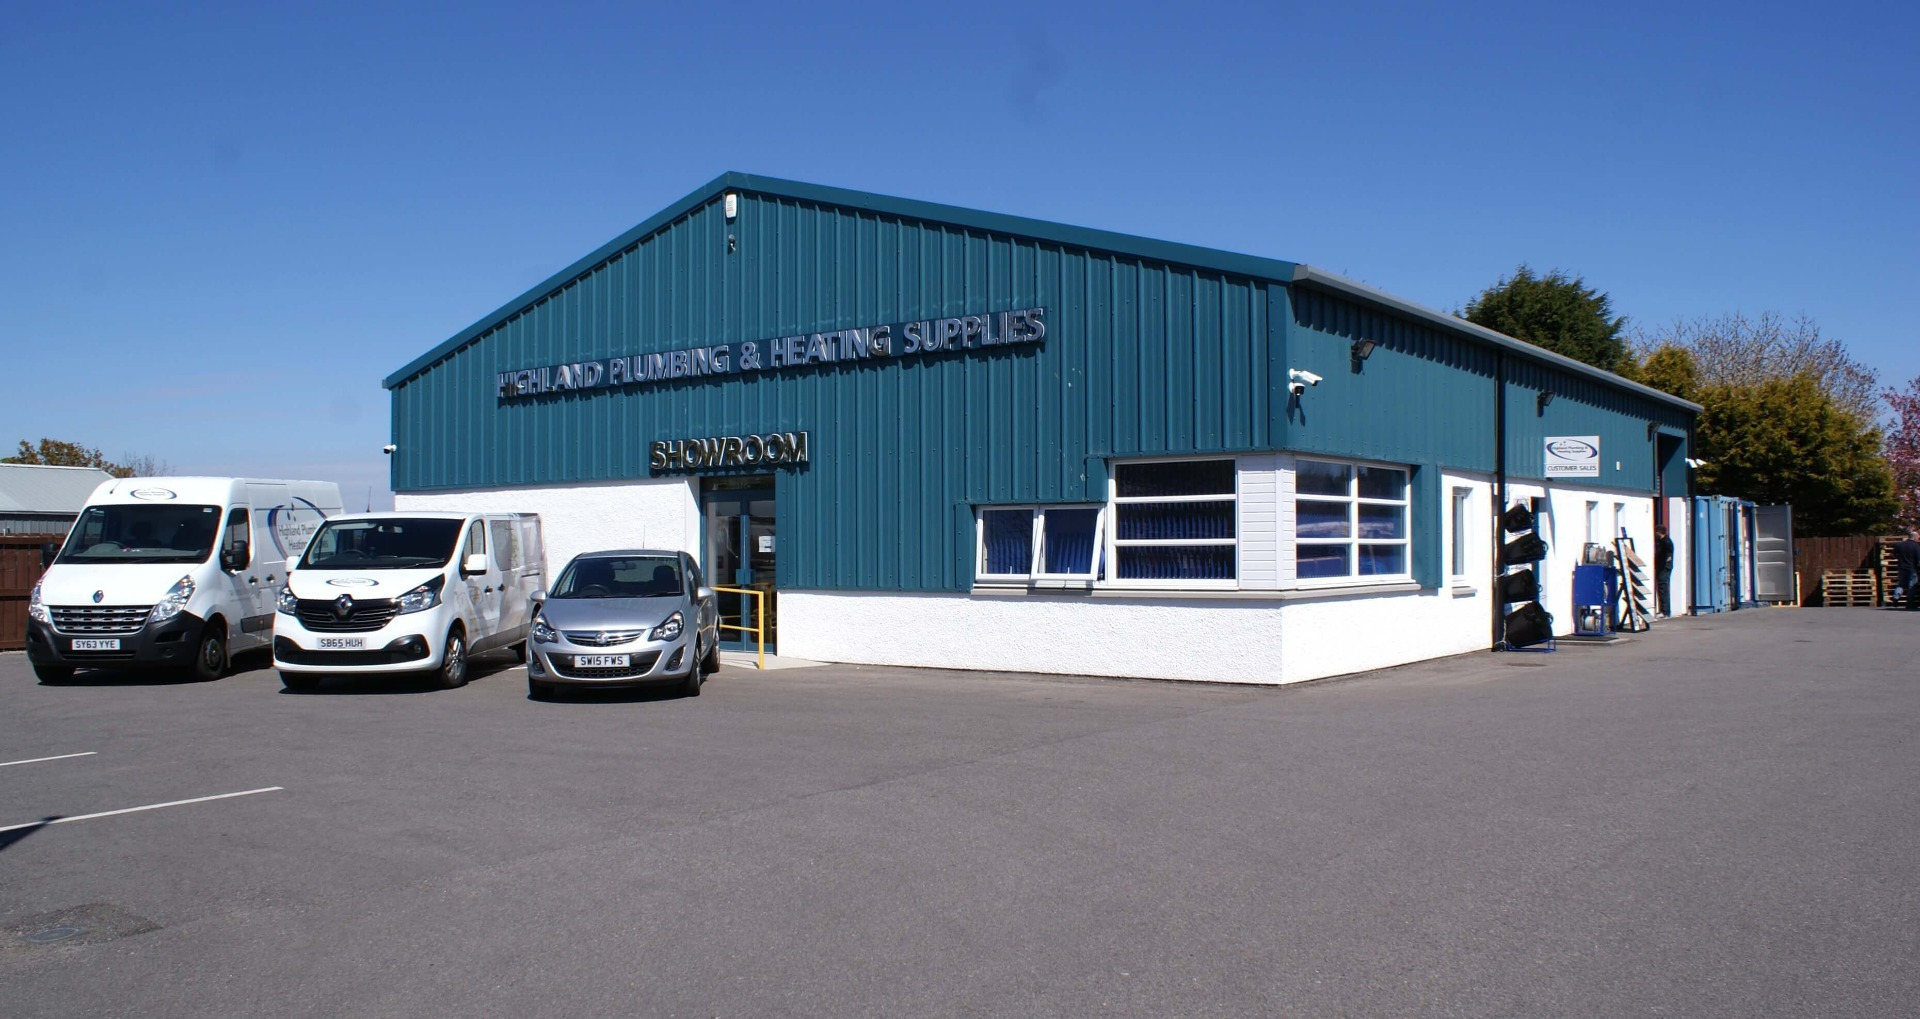 Front view of the Highland Plumbing & Heating Supplies Tain warehouse